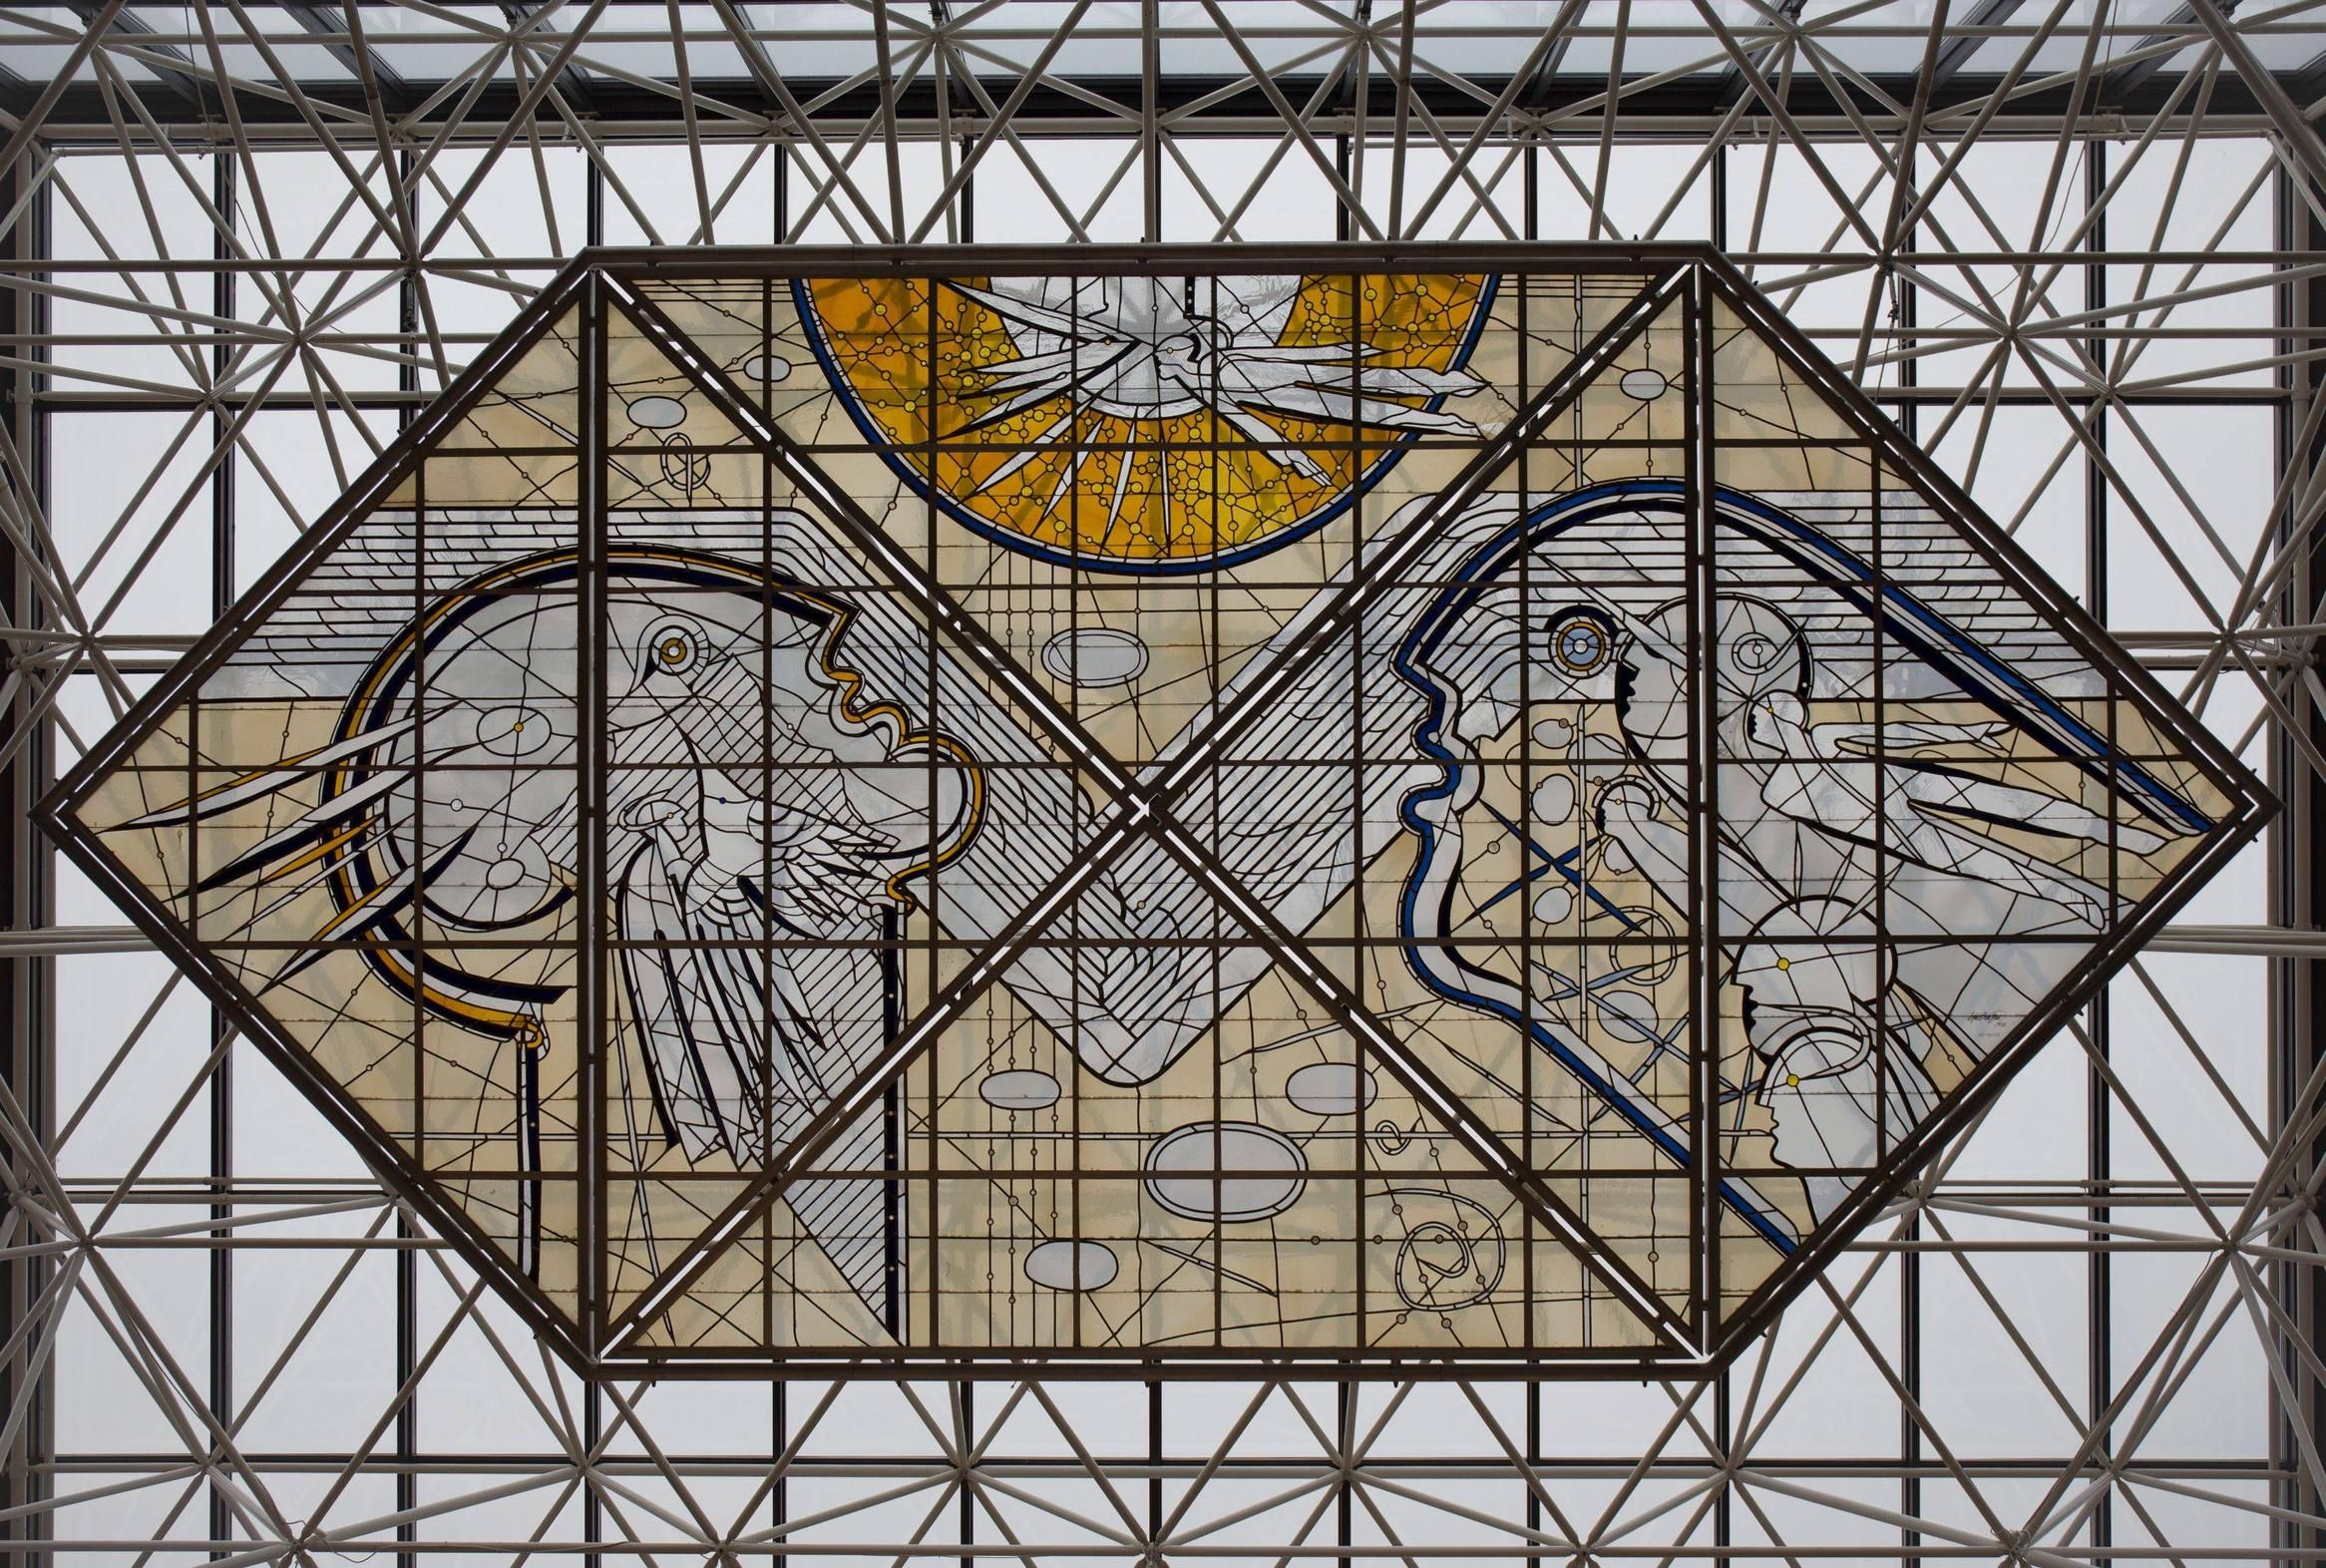 Stained glass in Keflavík International Airport, Iceland